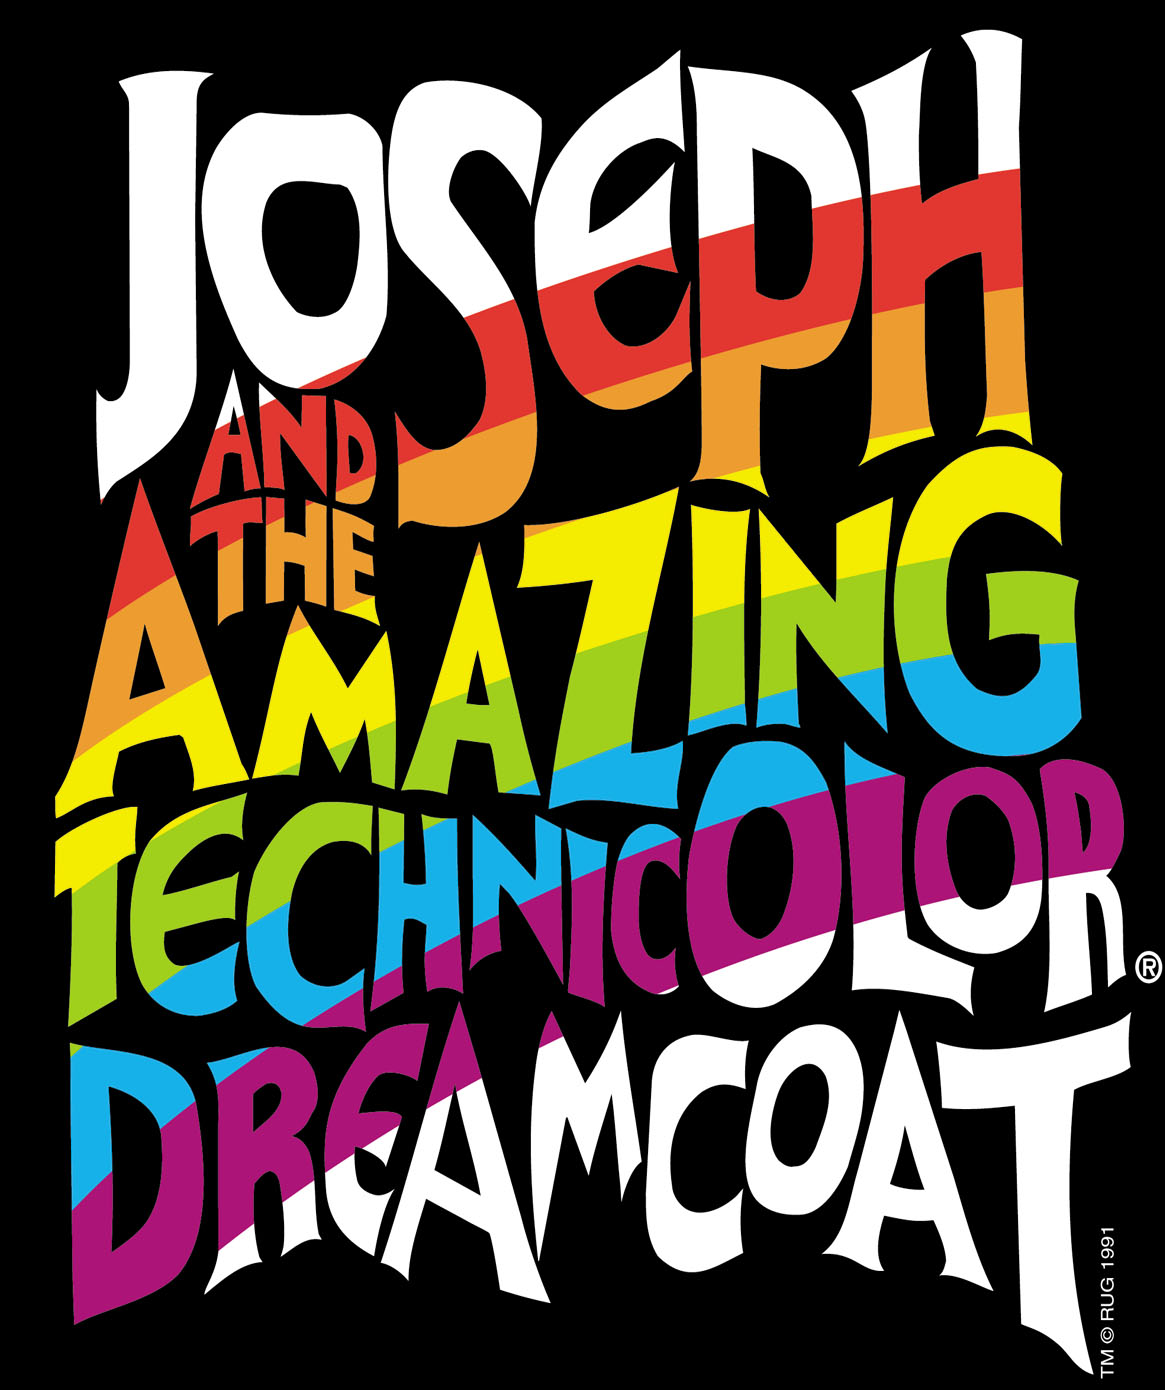 joseph and the amazing technicolor dream coat Get details about joseph and the amazing technicolor dreamcoat and explore  attractions, restaurants, places to stay, events, live music and more with the.